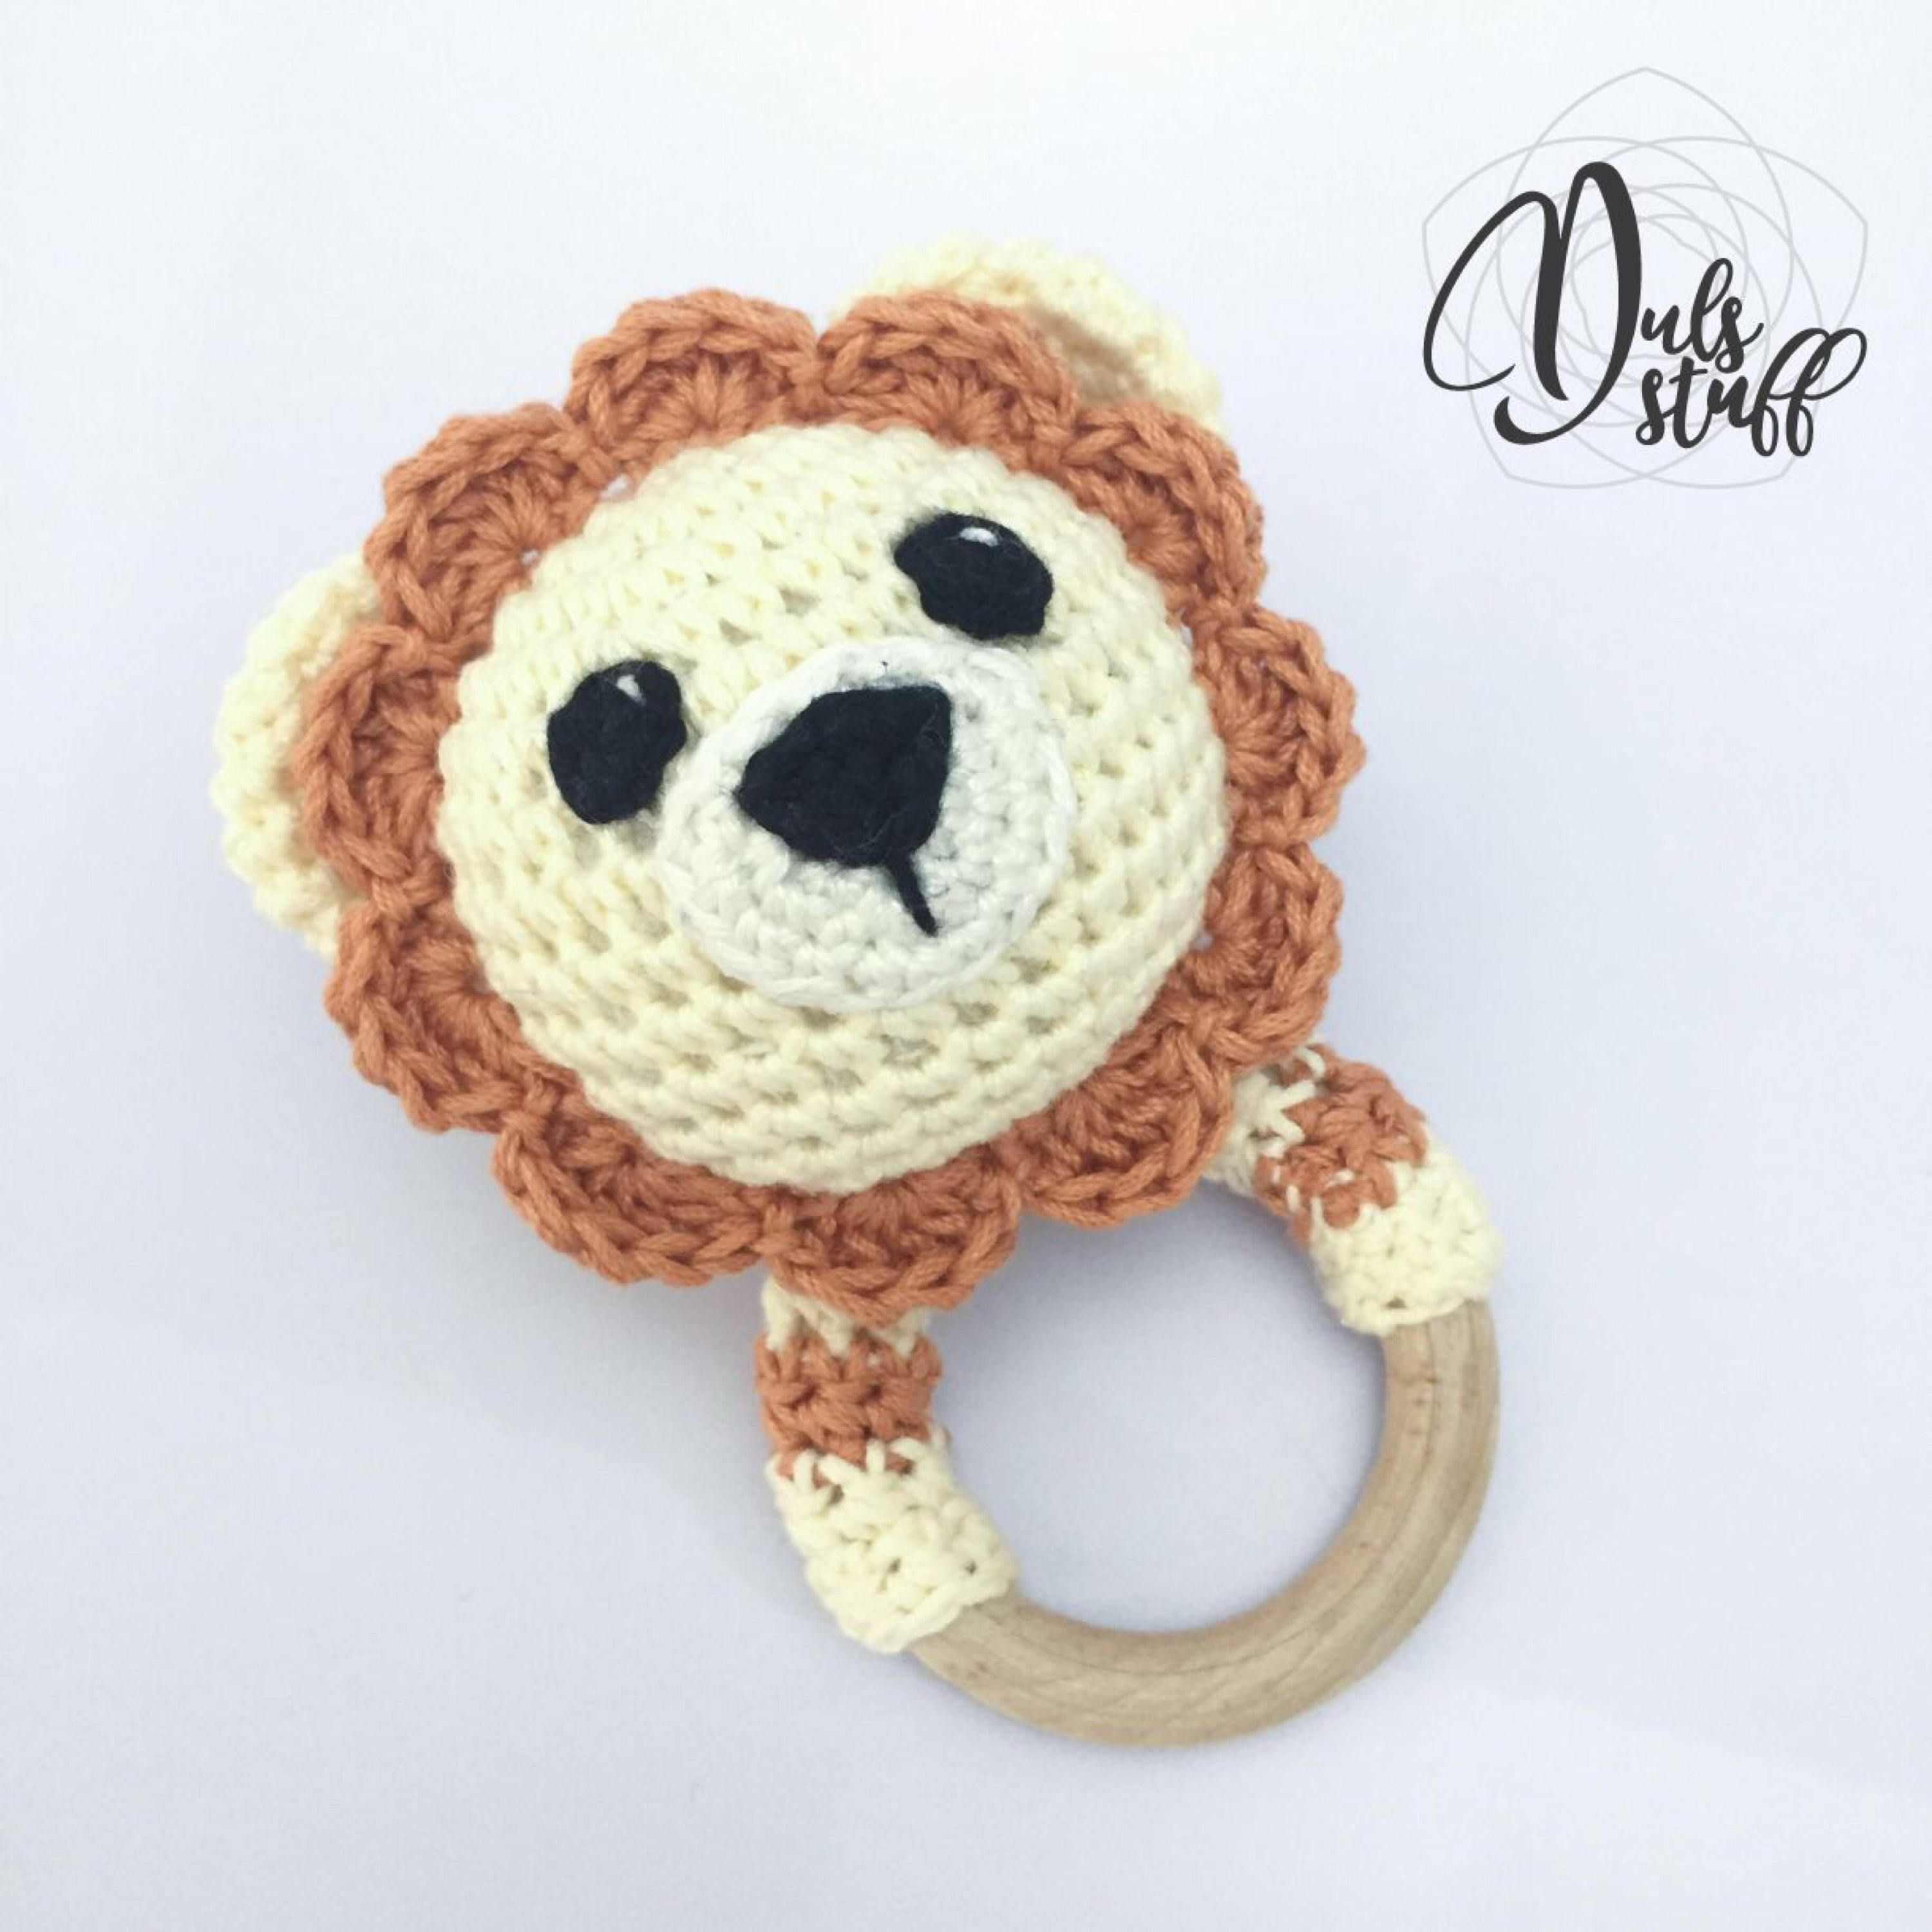 Crochet and wooden lion baby rattle and teether | León crochet ...